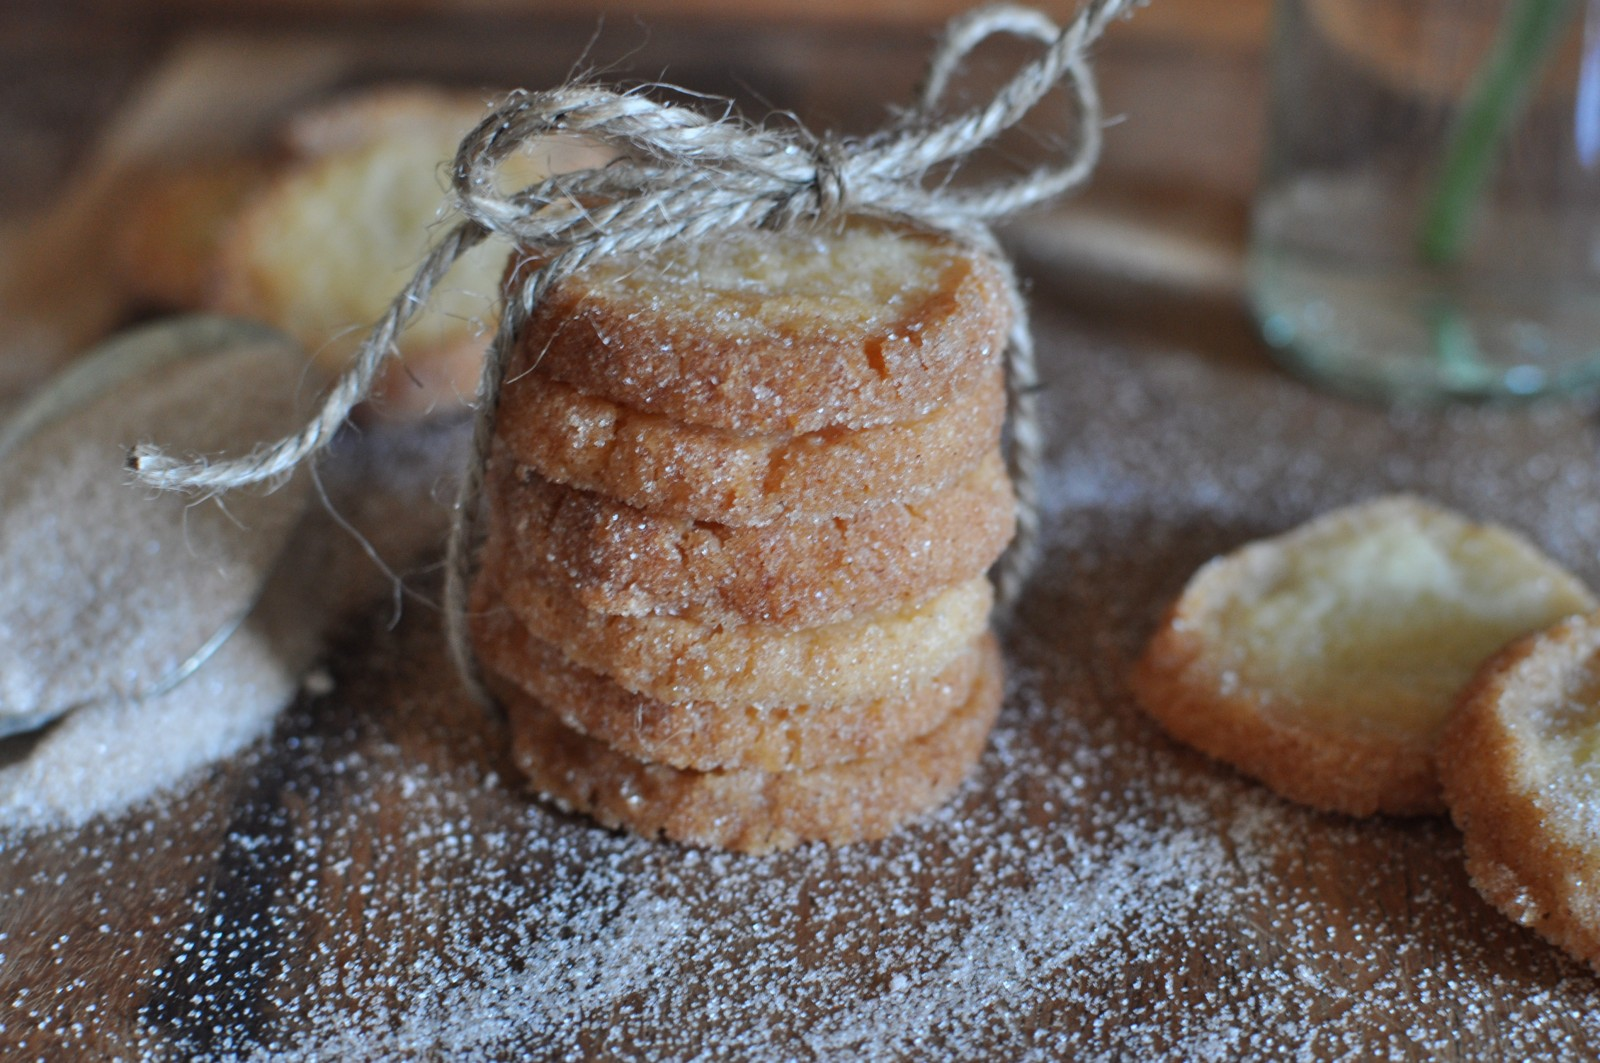 Cinnamon circles – just like a cinnamon tea cake only crunchy